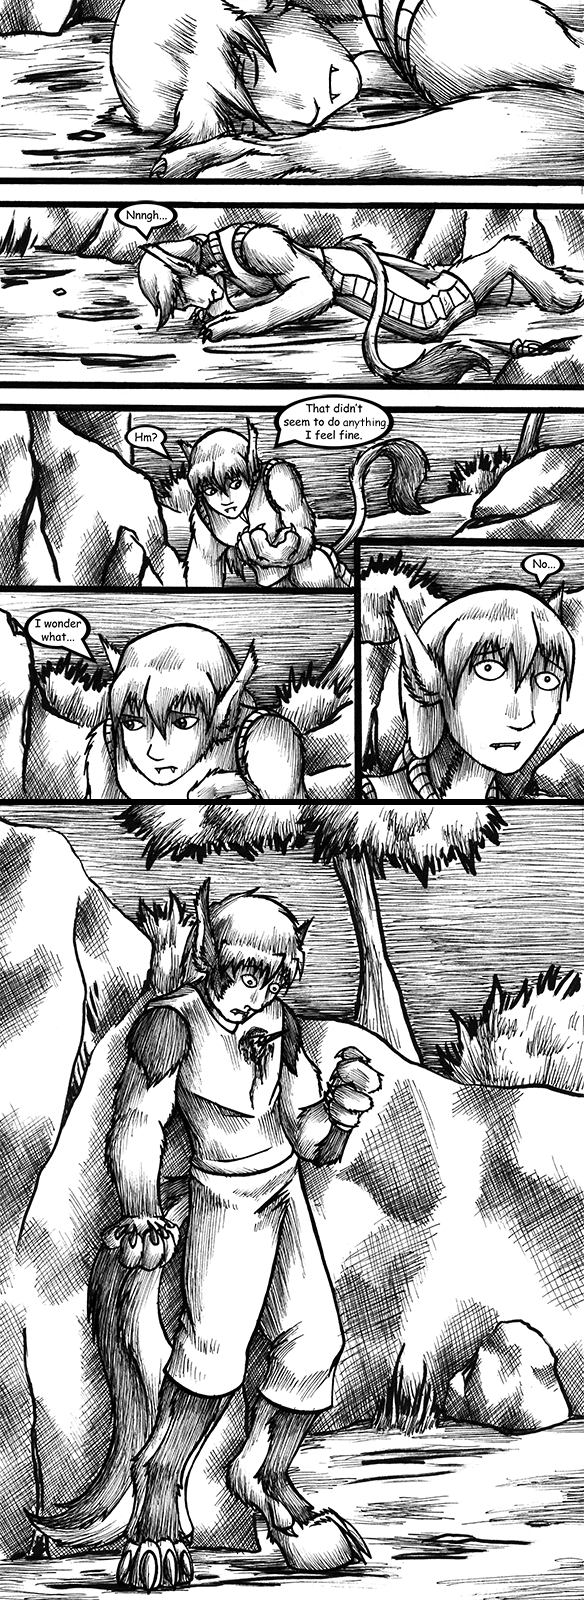 Ch 21 Page 13/14